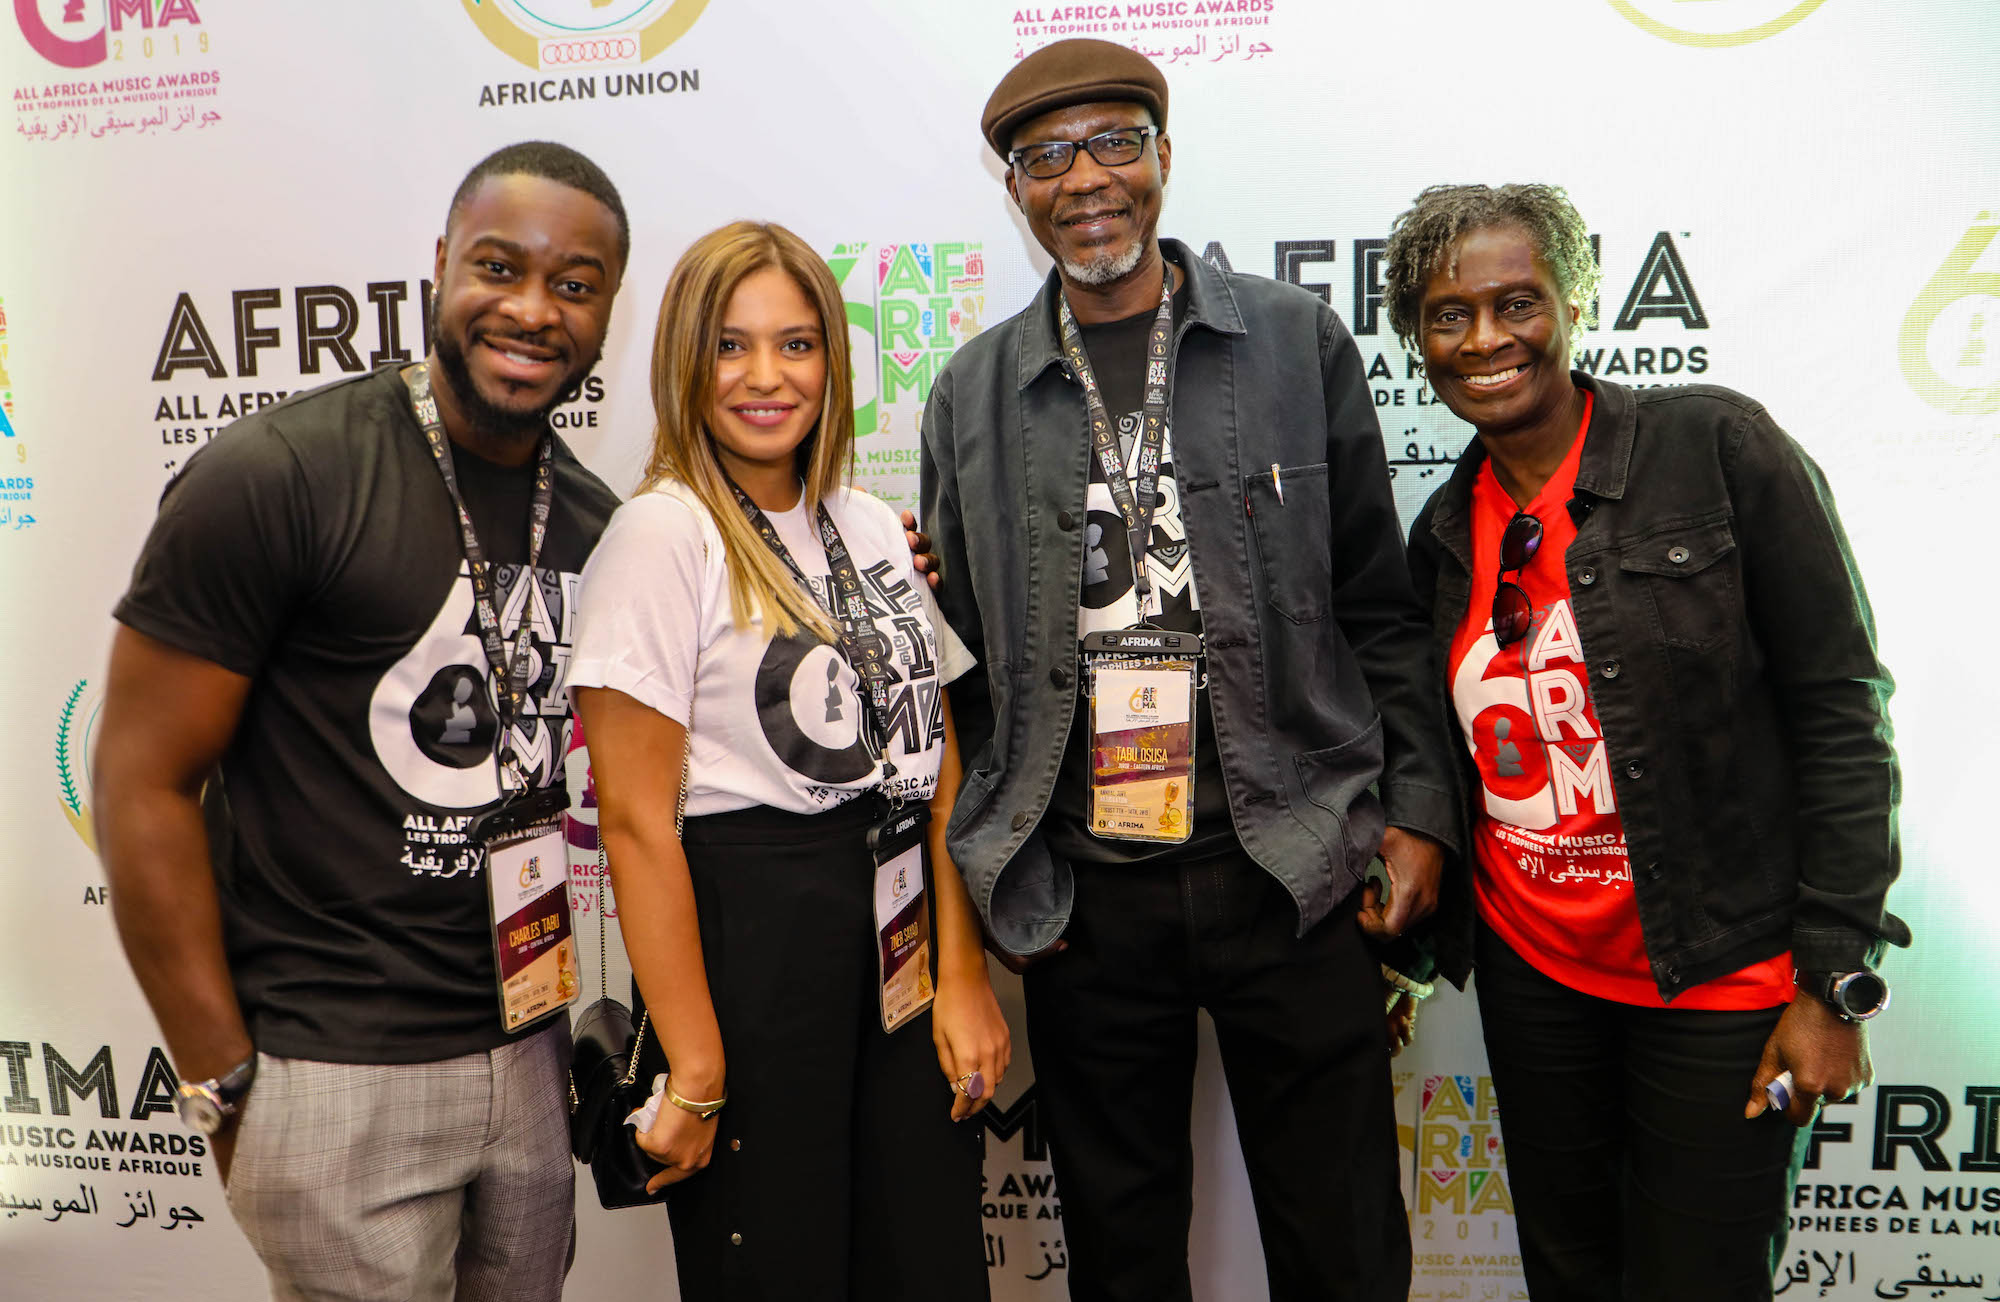 AFRIMA unveil nominees for 6th awards ceremony. © AFRIMA